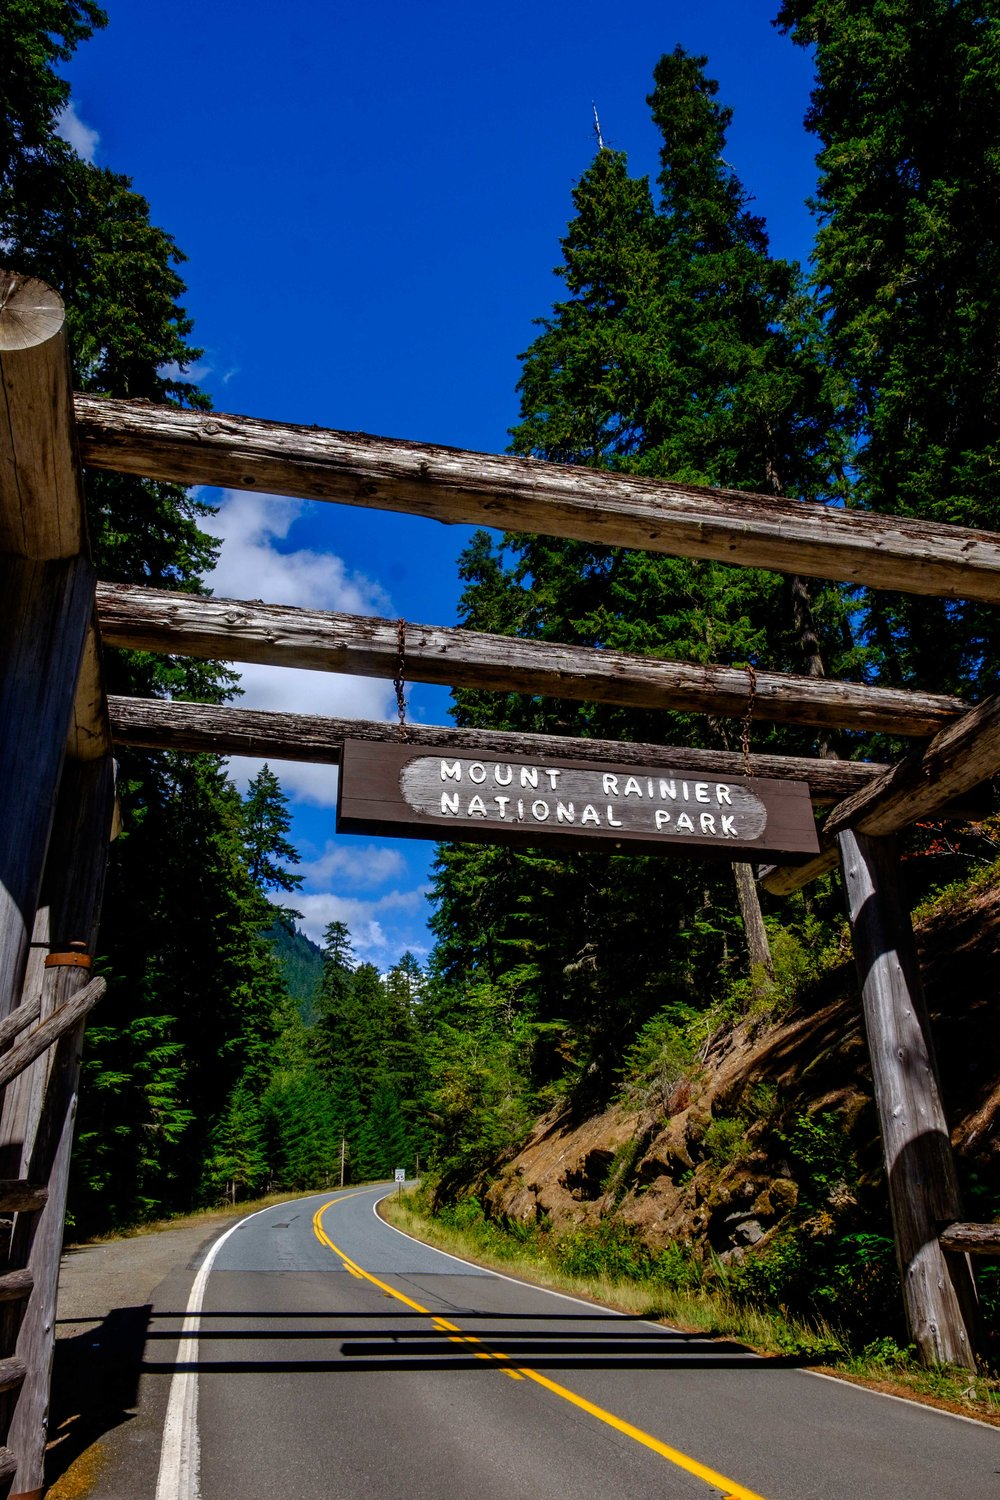 20160904-SP-Mount Rainier National Park-_DSF2134 2.jpg